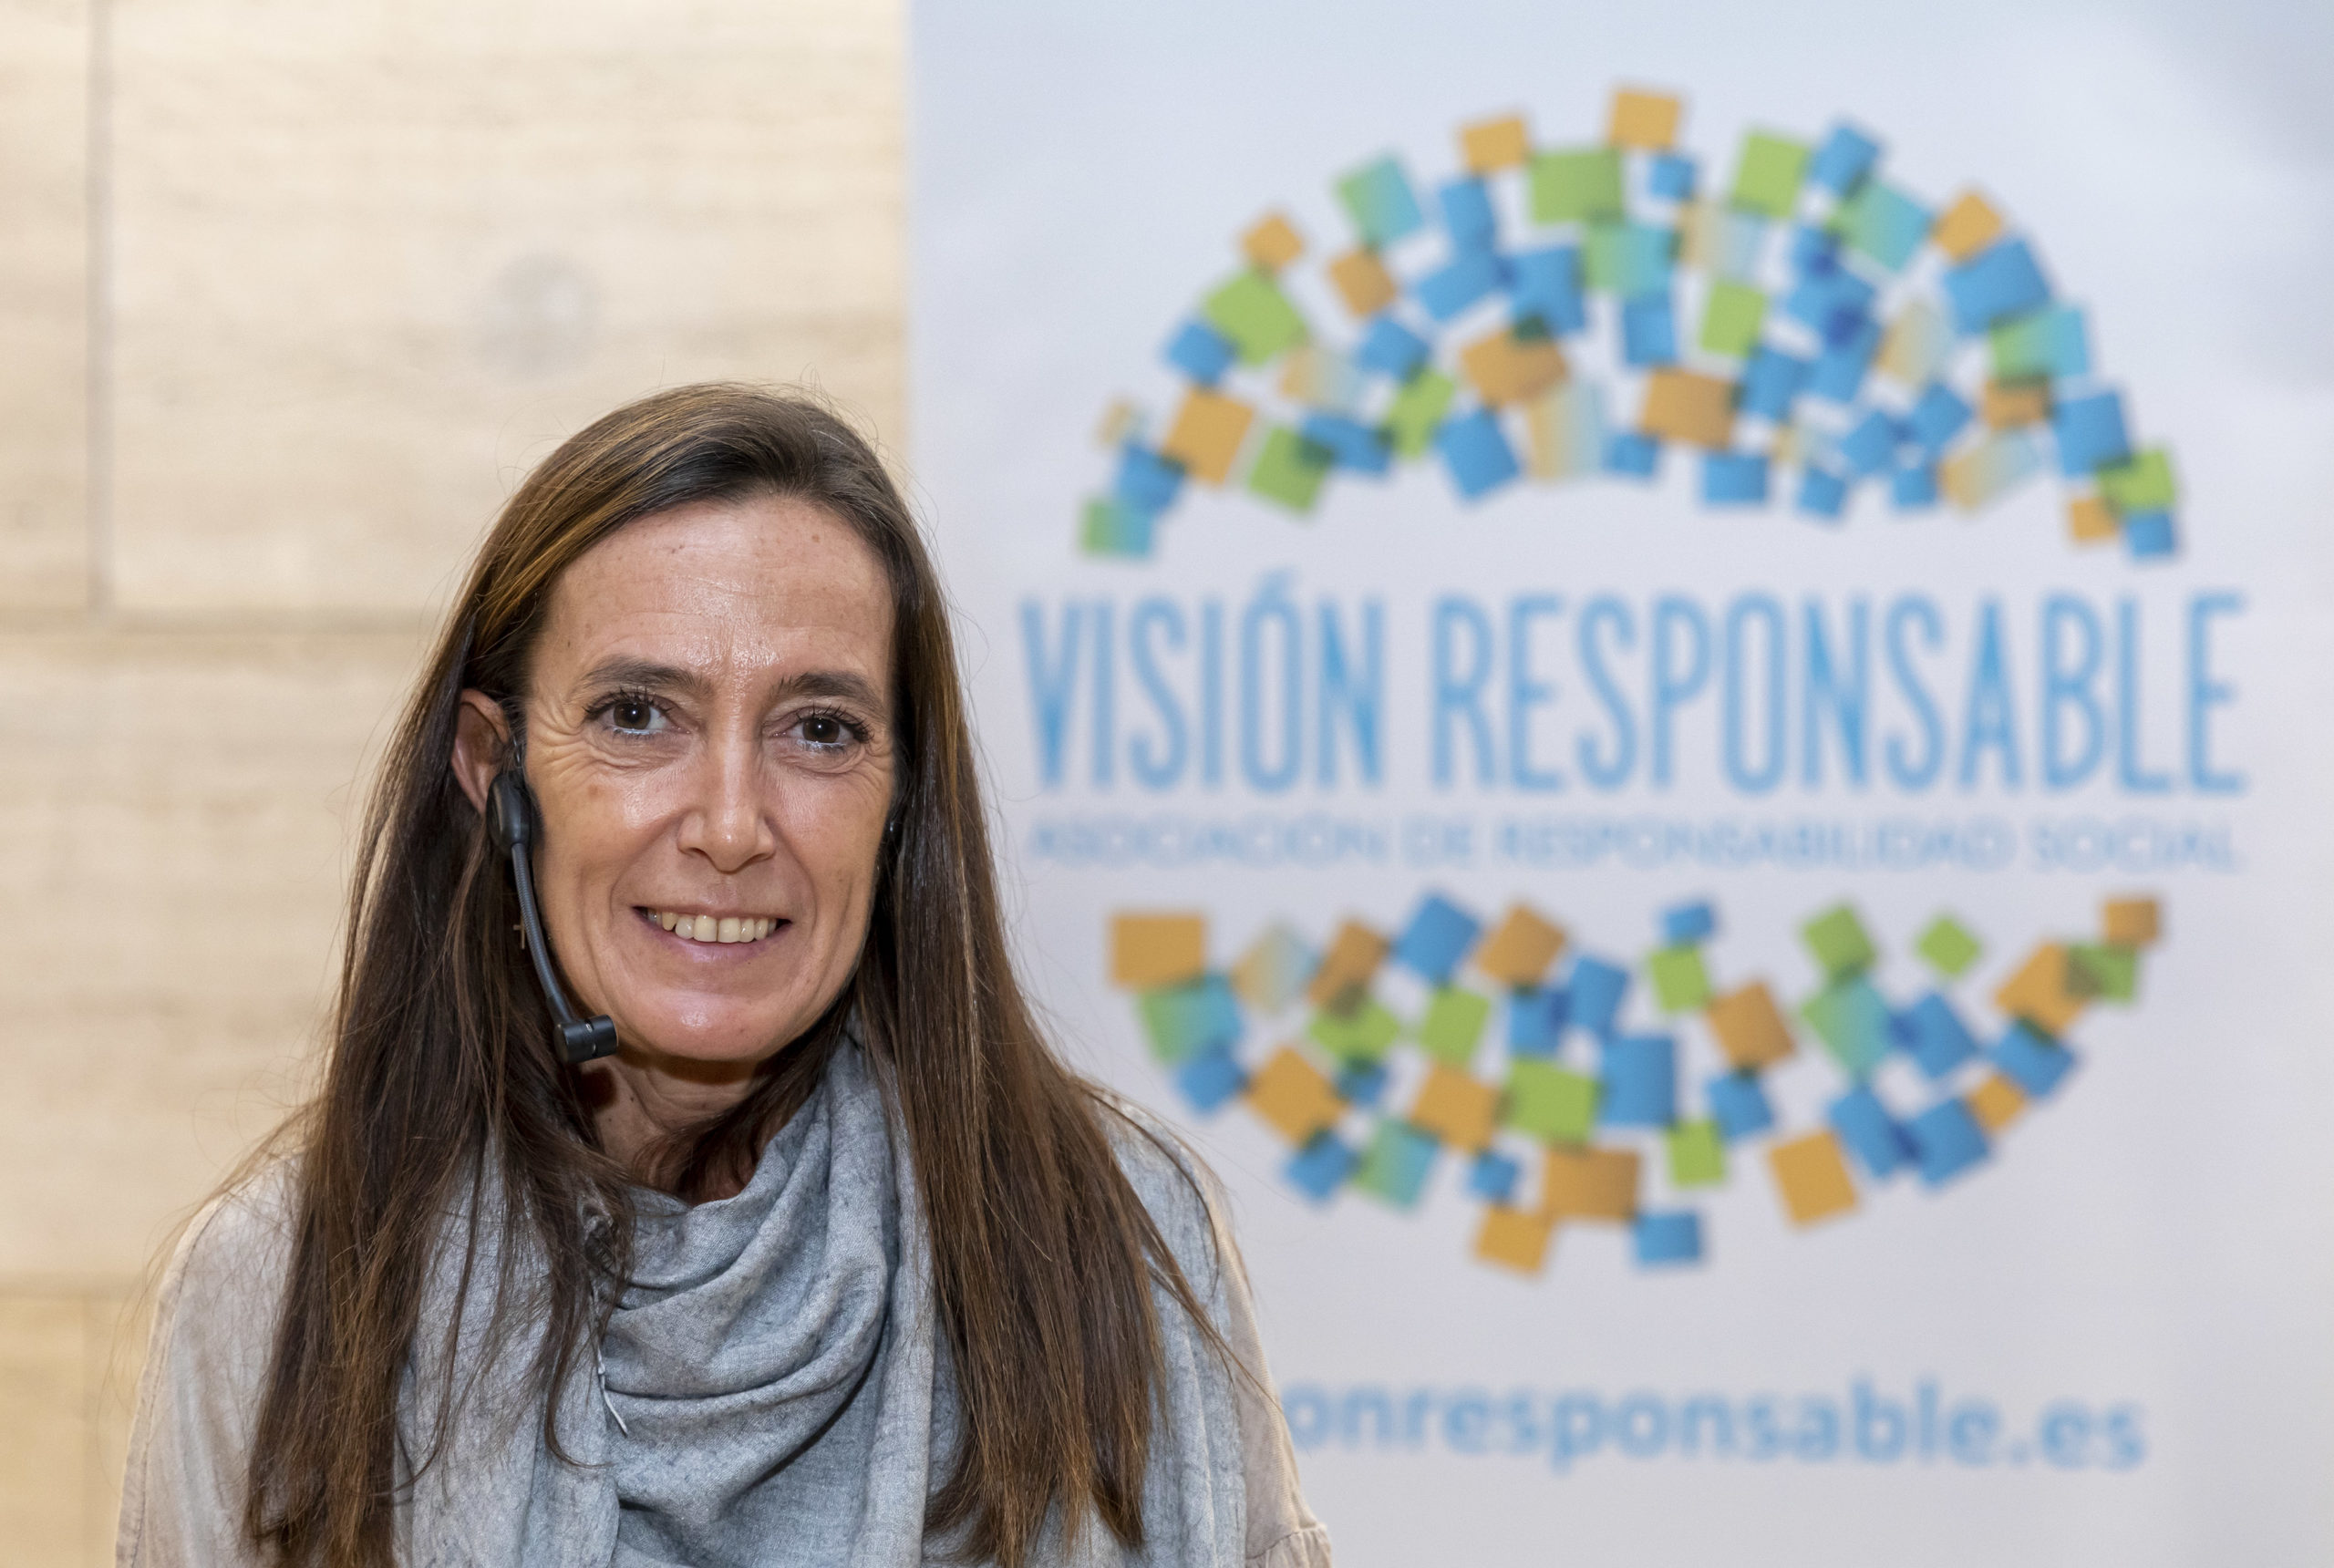 vision_responsable-0016